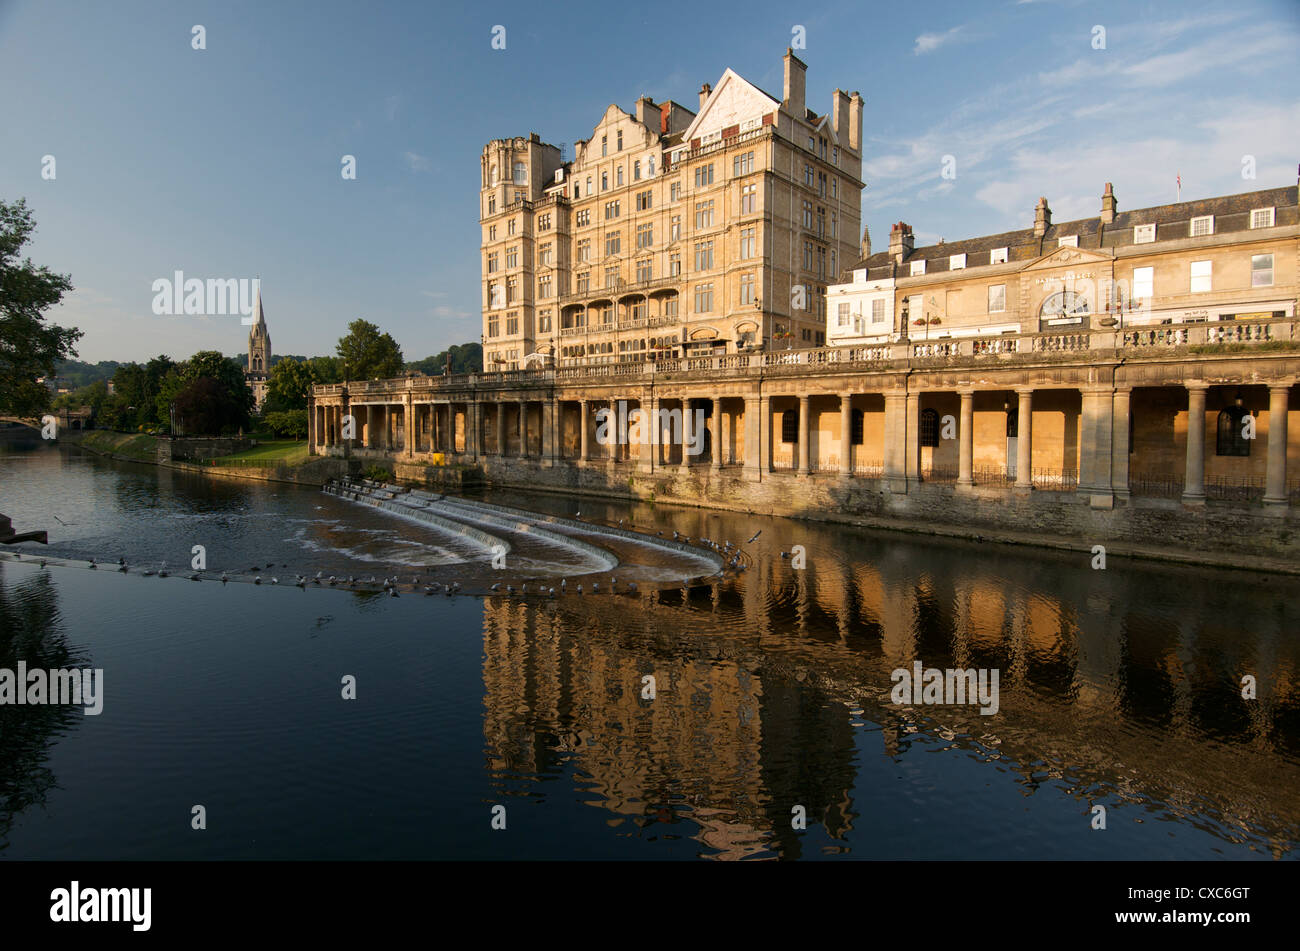 Pulteney Weir, baignoire, UNESCO World Heritage Site, Avon, Angleterre, Royaume-Uni, Europe Photo Stock